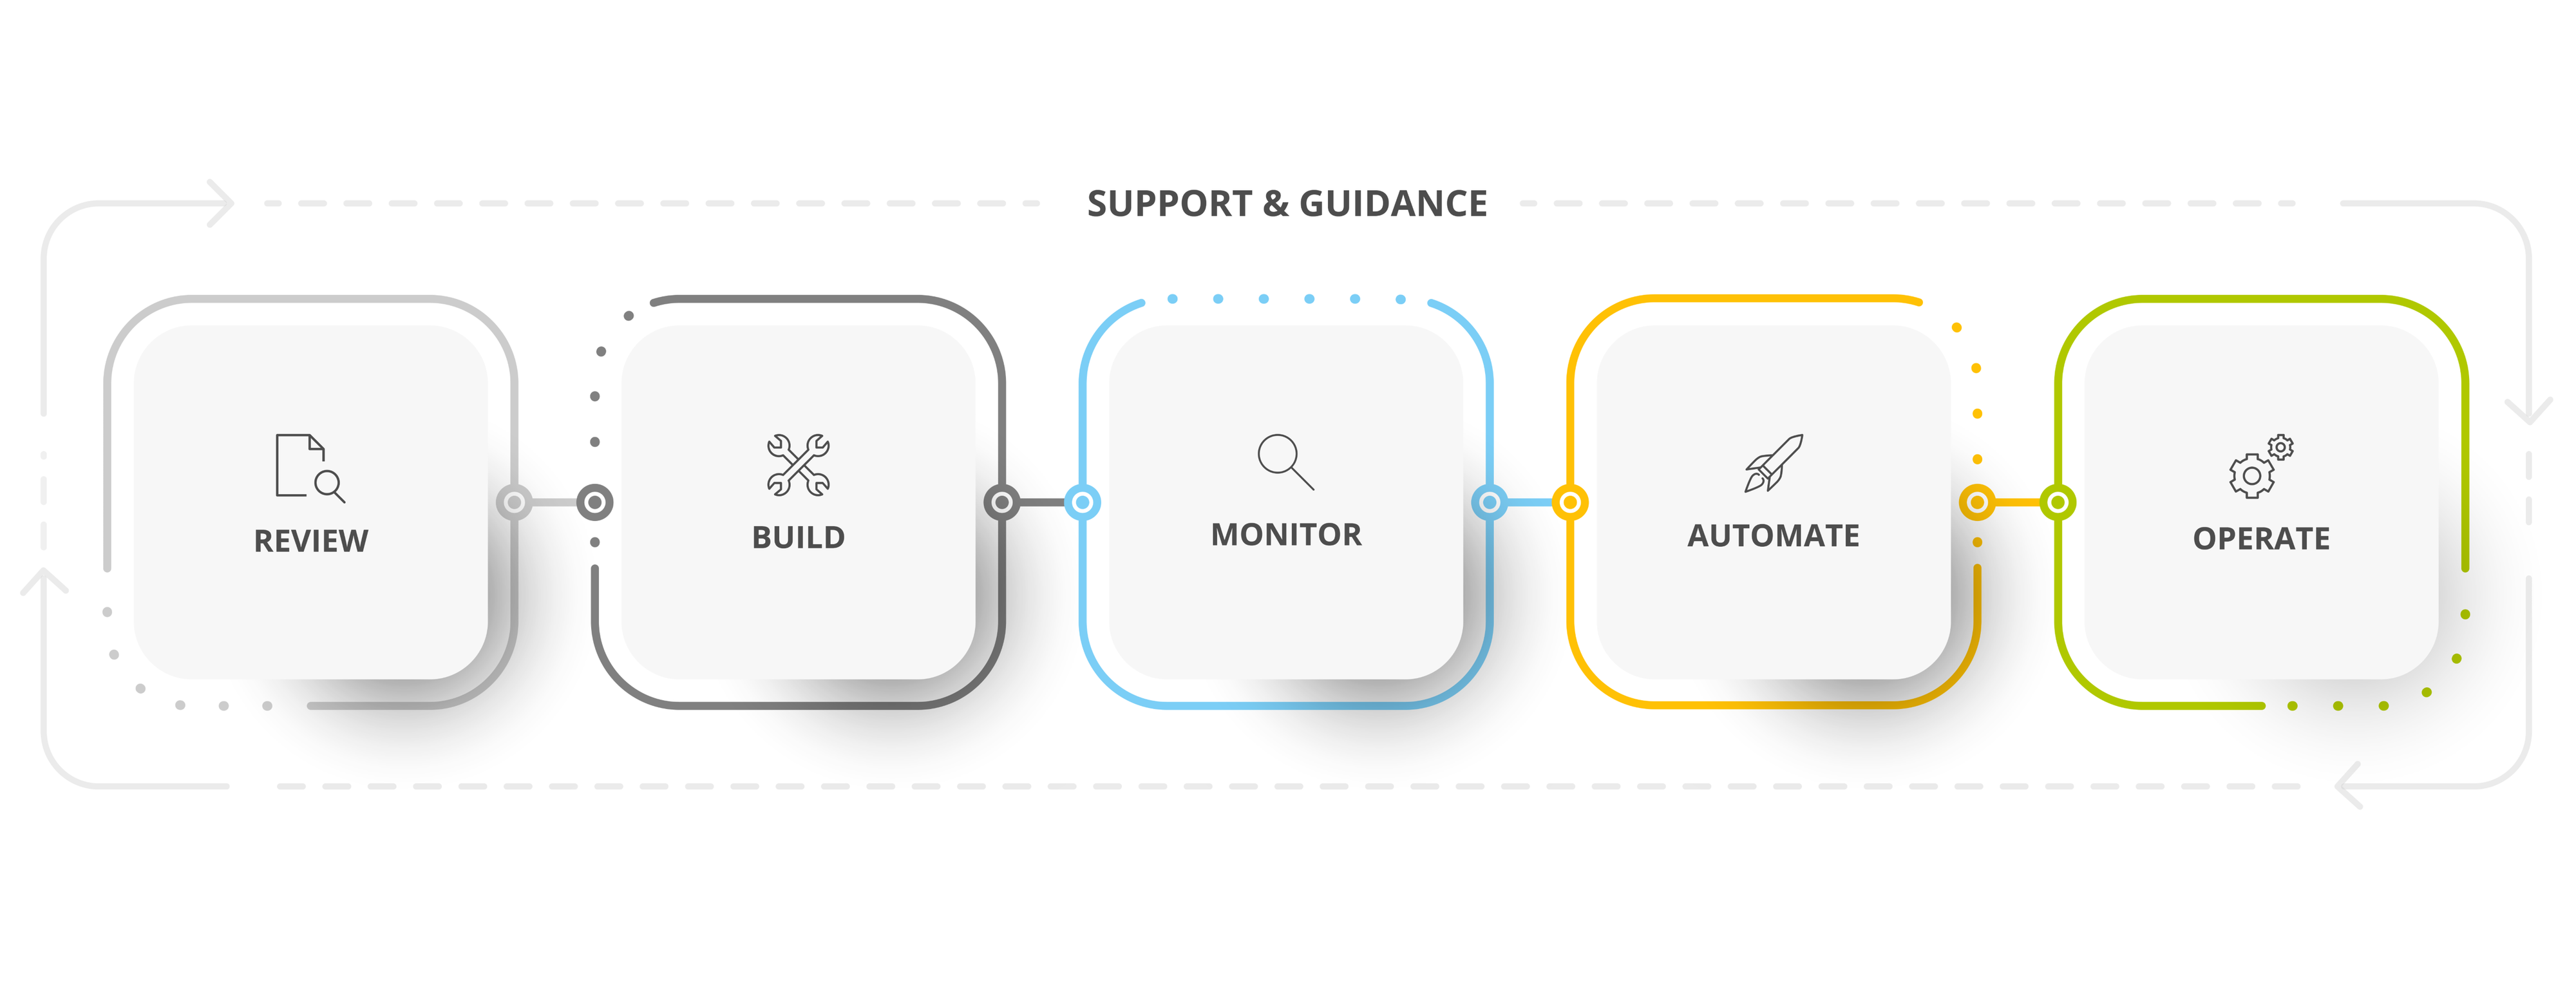 Bild Support & Guidance AWS Managed Services